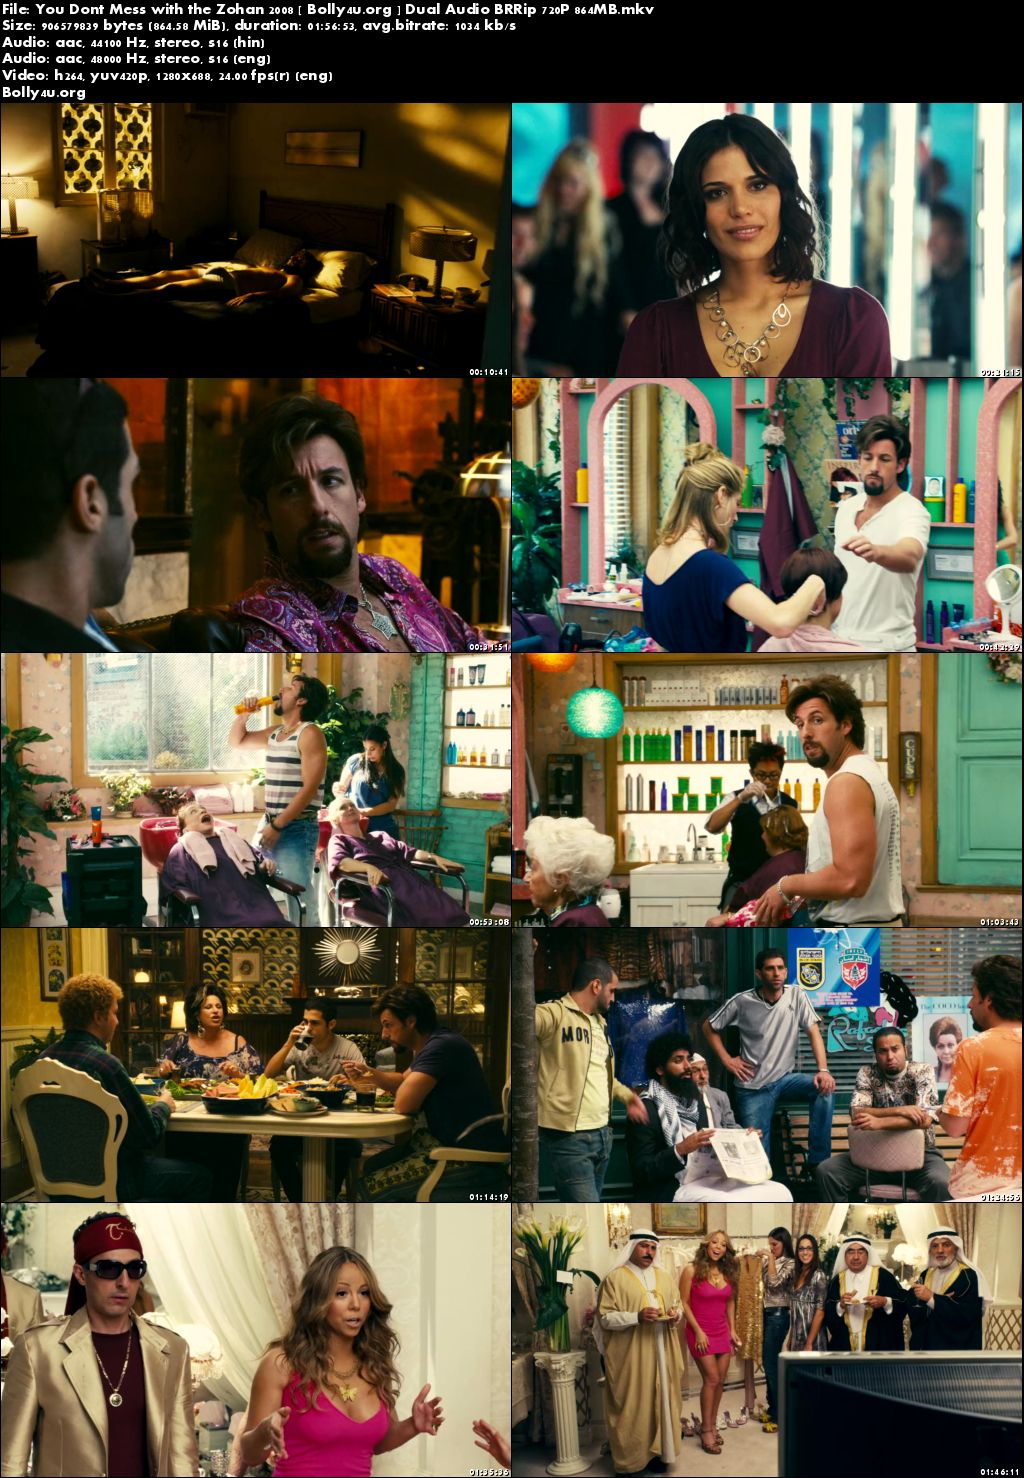 You Dont Mess with the Zohan 2008 BRRip 850MB Hindi Dual Audio 720p Download